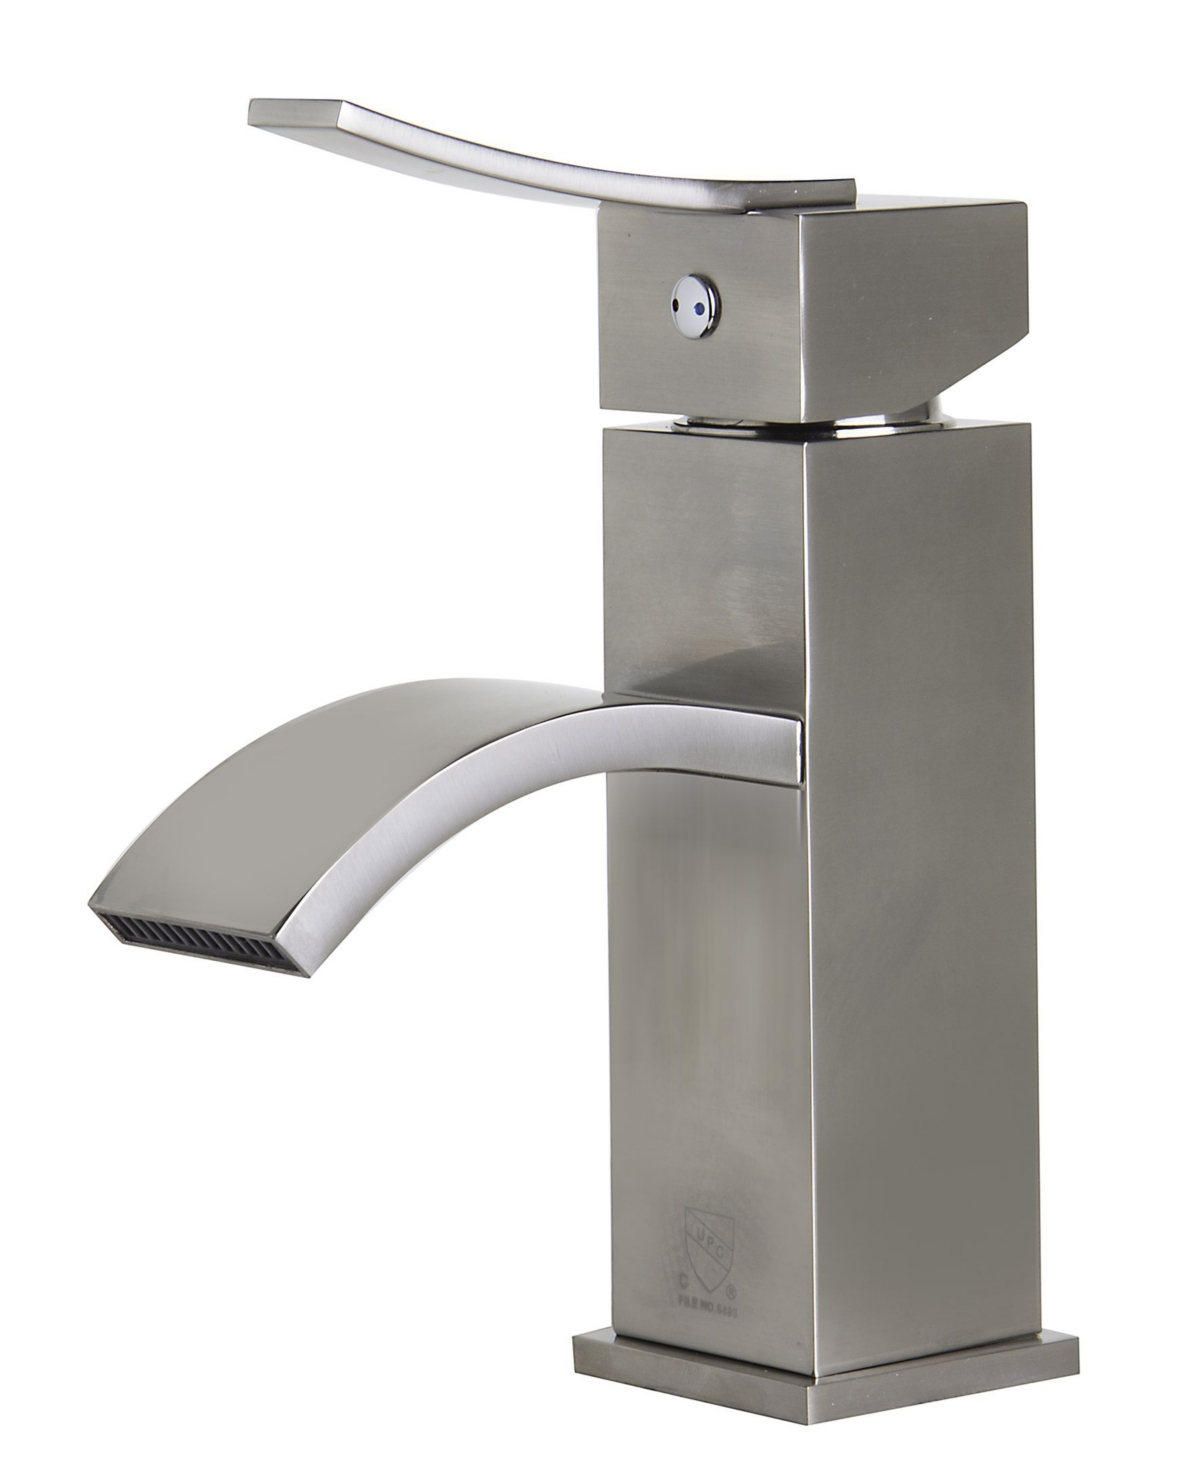 Alfi brand Brushed Nickel Square Body Curved Spout Single Lever Bathroom Faucet Bedding